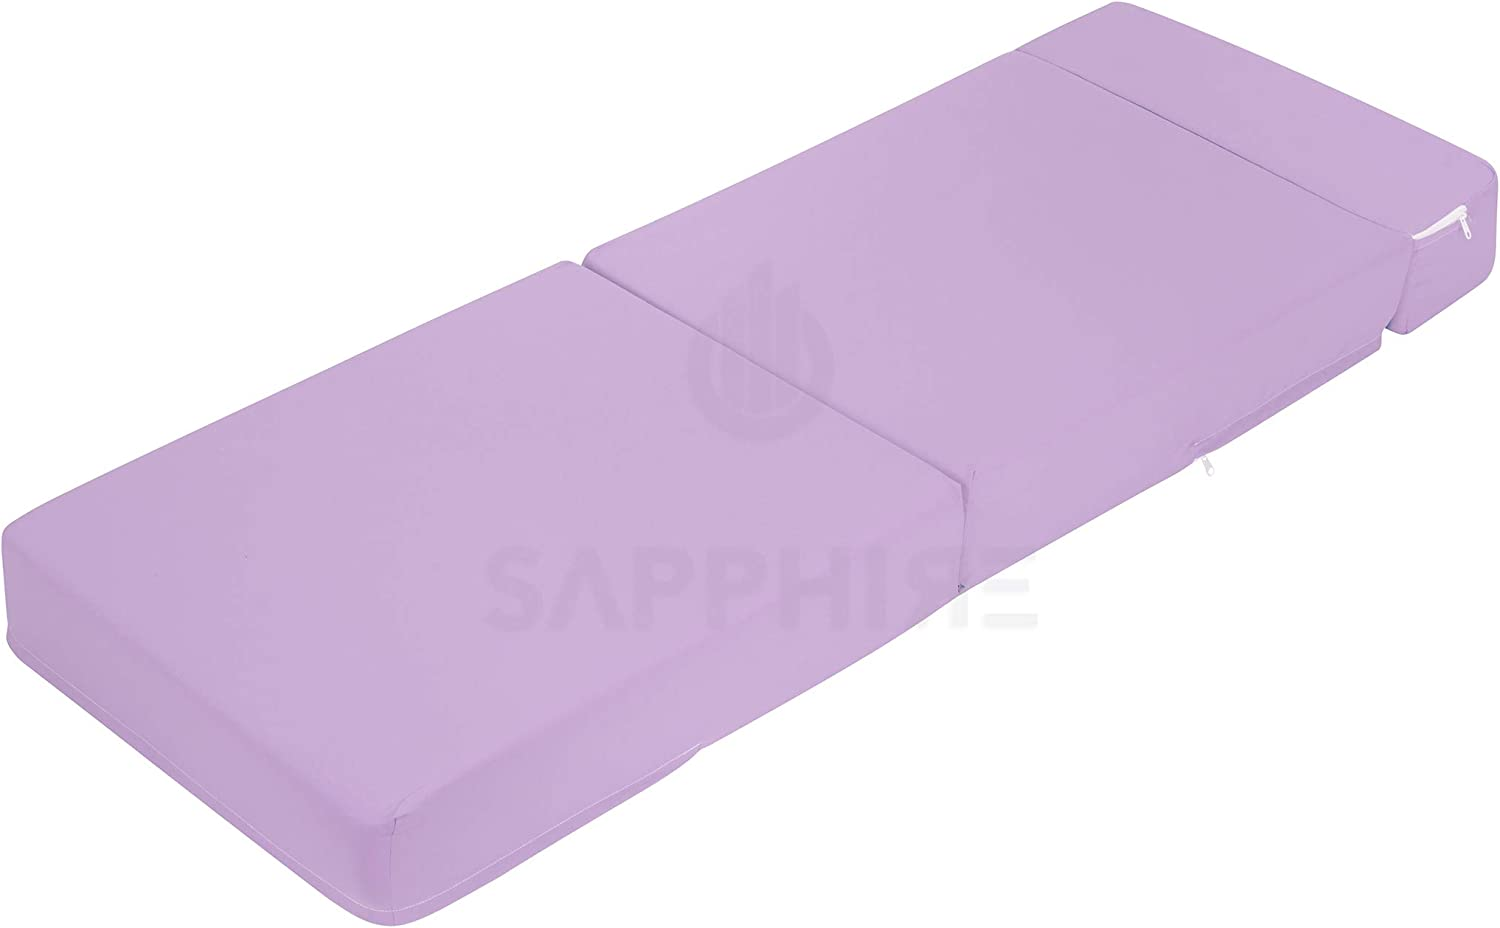 G/&H Lilac Folding Mattress with Removable Cover Sofa Bed Chair Bed Single Fold Out Z Bed